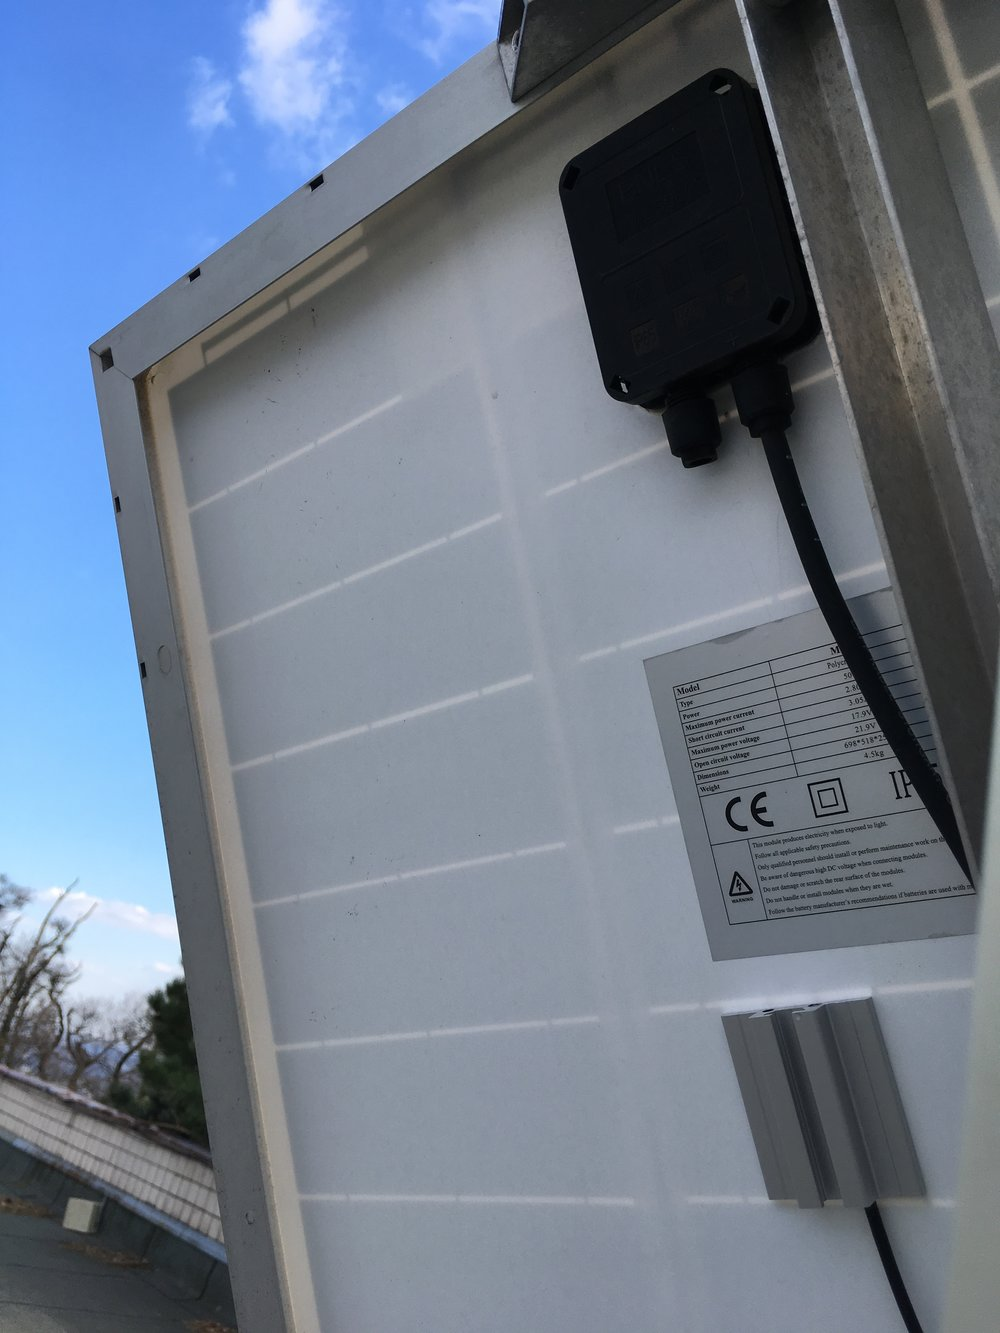 SolarTemp PT100 bonded on the back of a solar panel